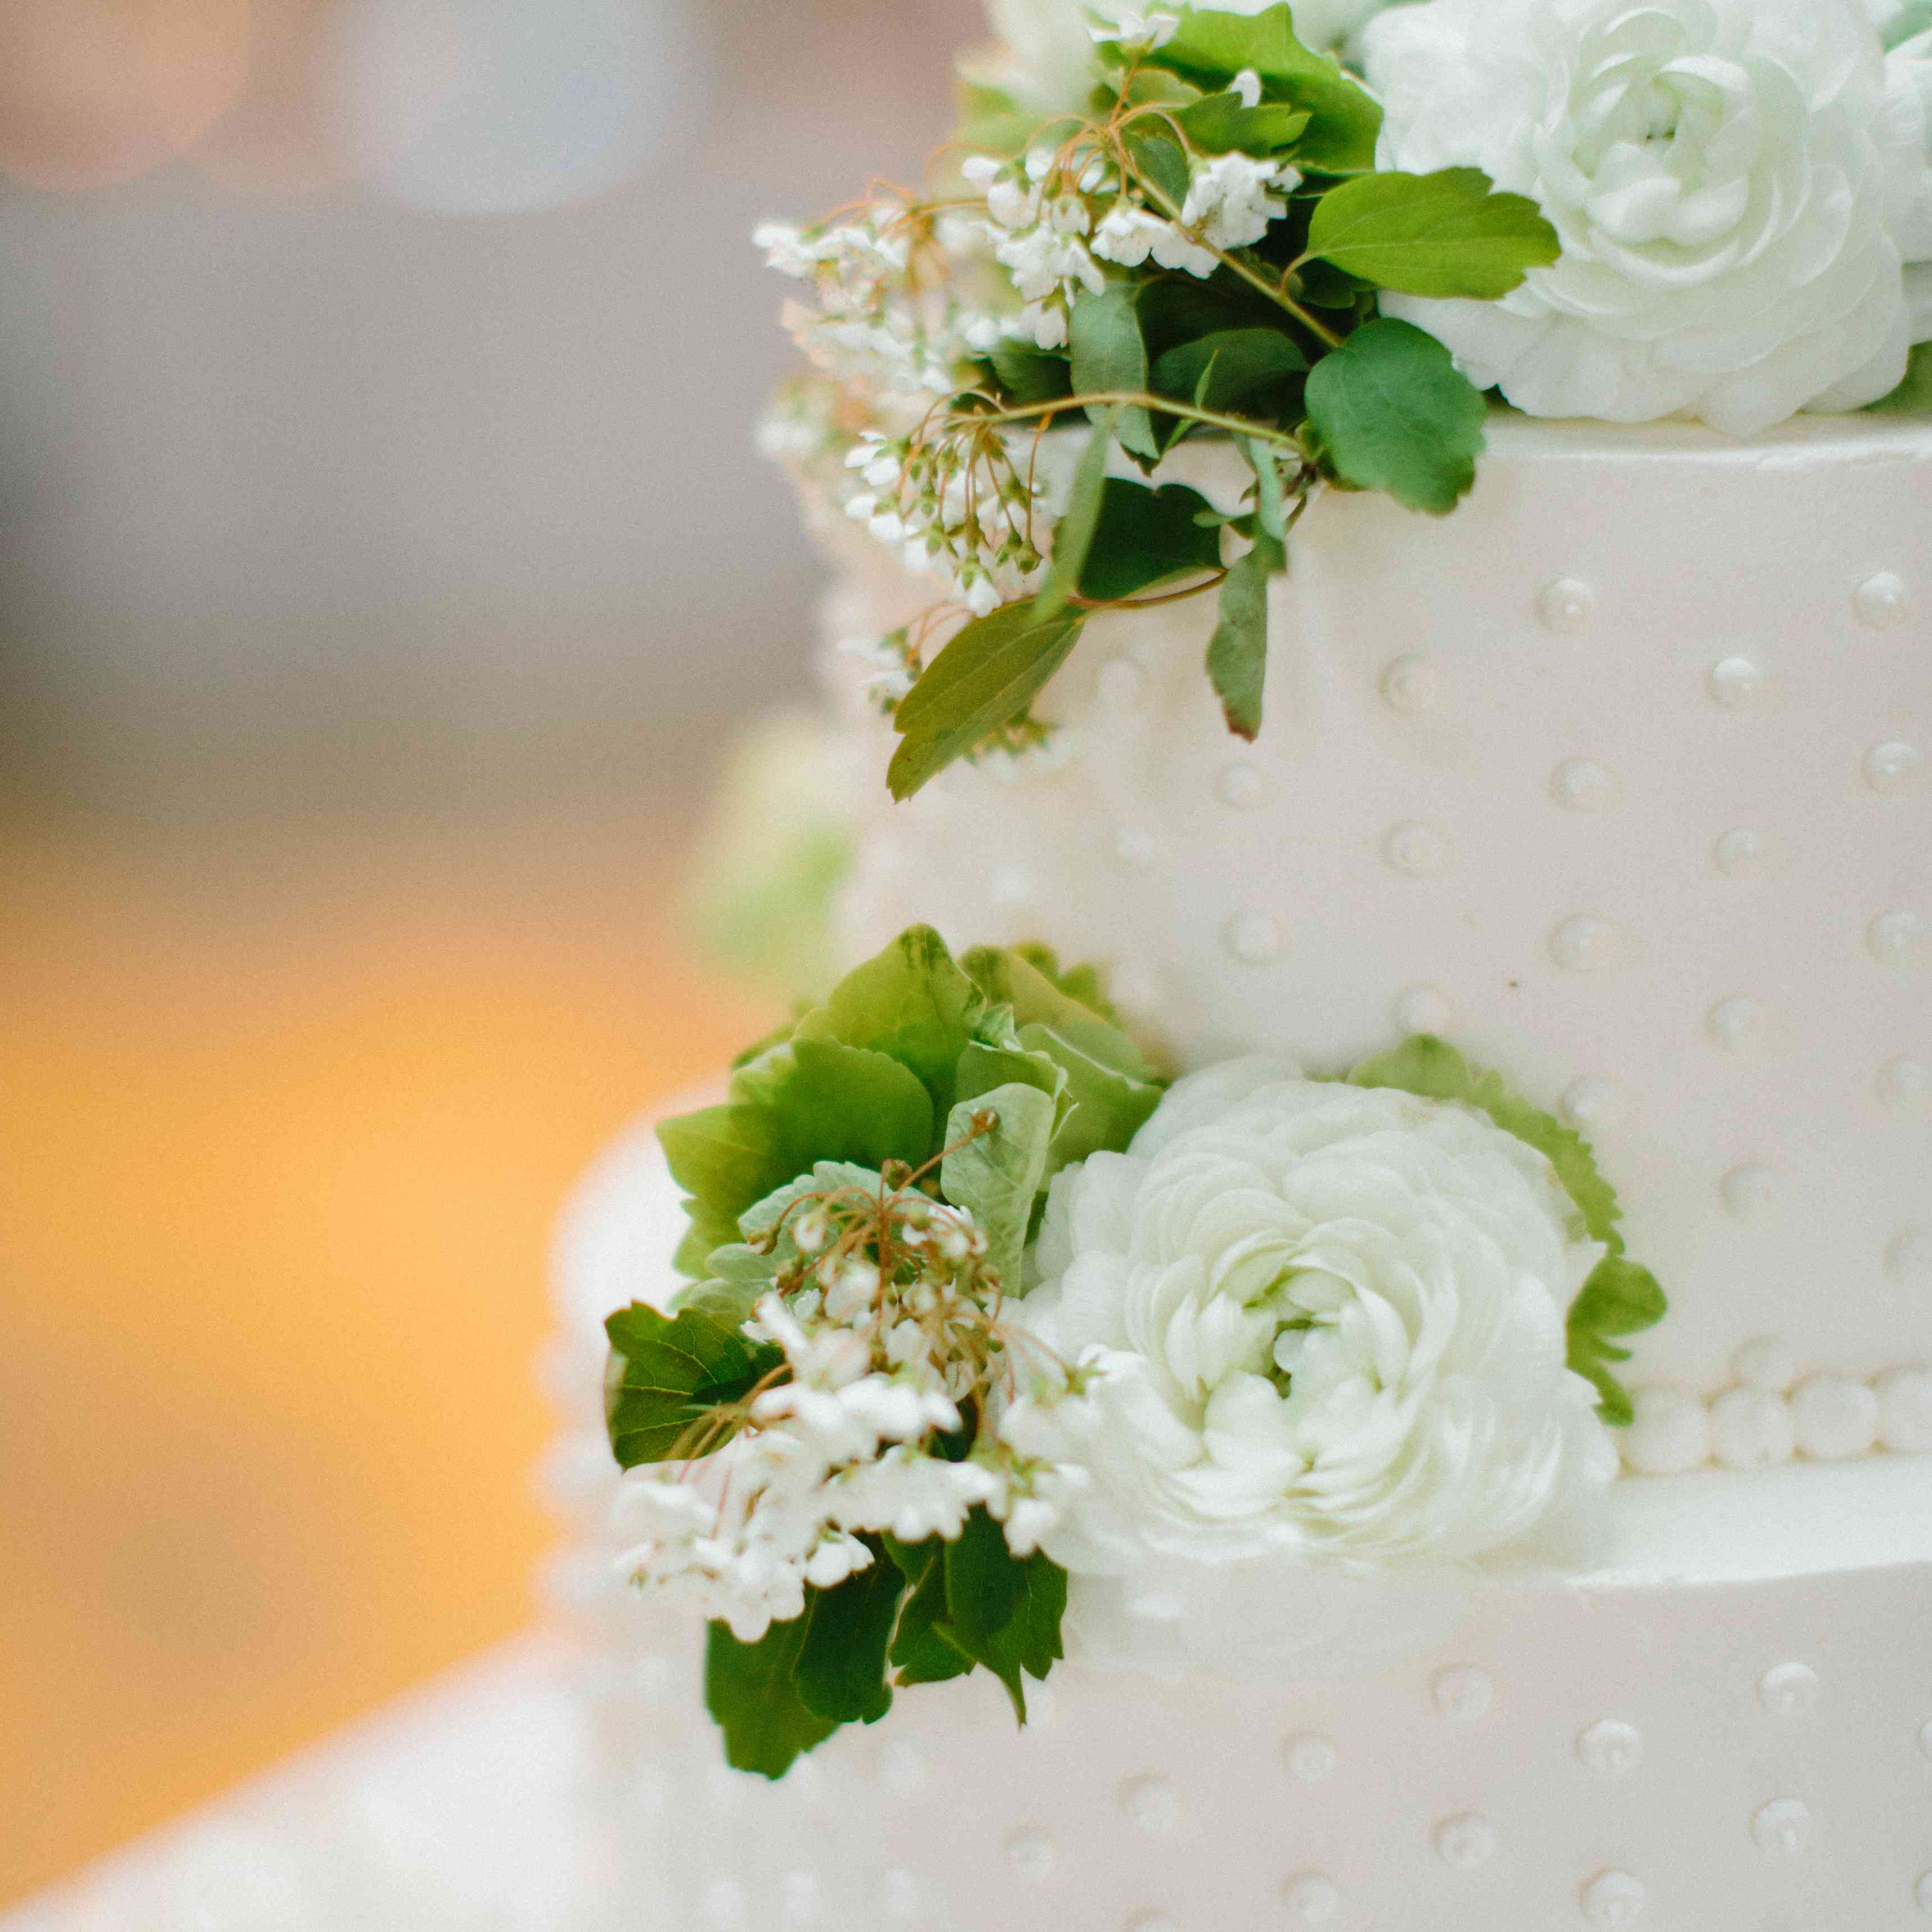 Wedding Flowers Lincoln: A Classic Spring Wedding In The Heart Of Chicago's Lincoln